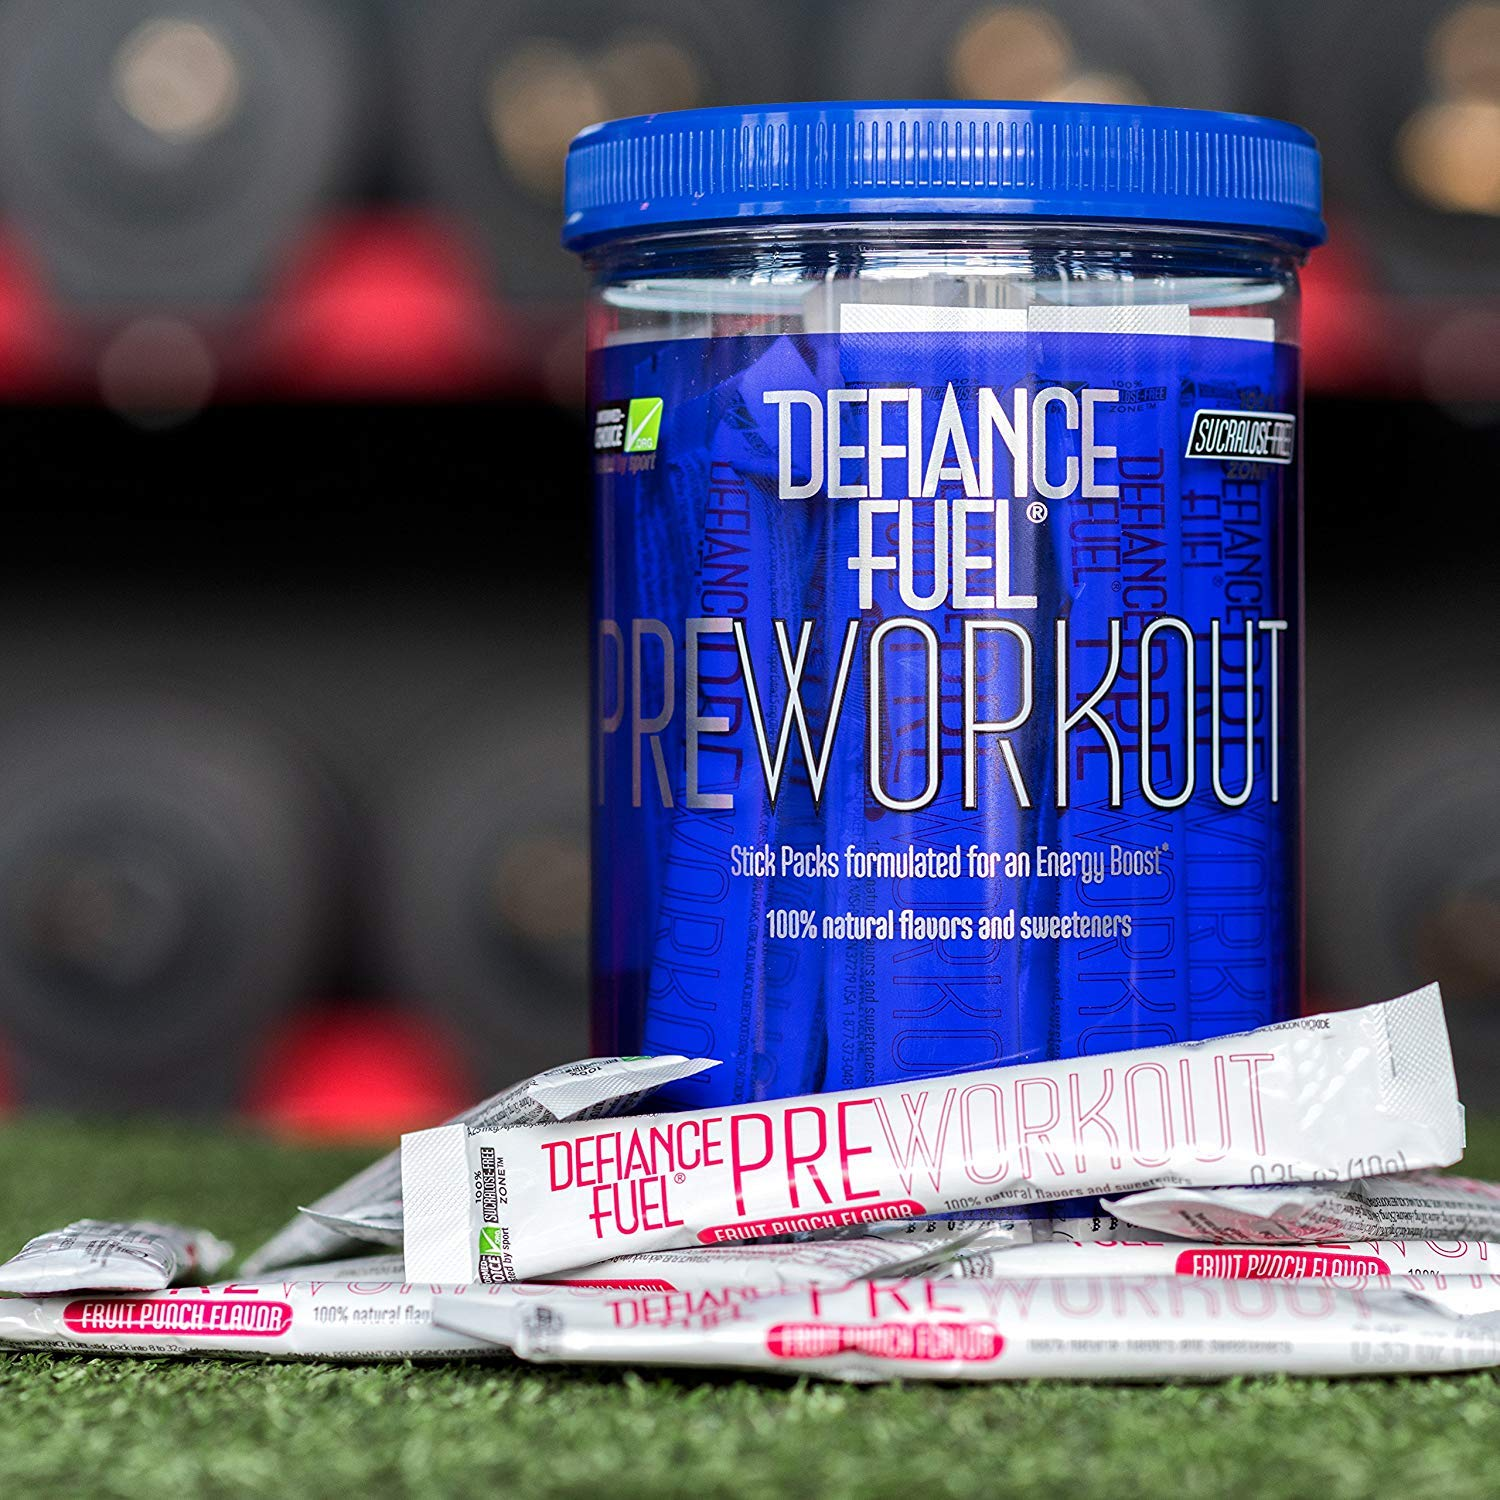 Defiance Fuel Pre Workout Powder Energy Drink w/ Beta Alanine, Taurine and Amino Acids by Defiance Fuel (Image #3)